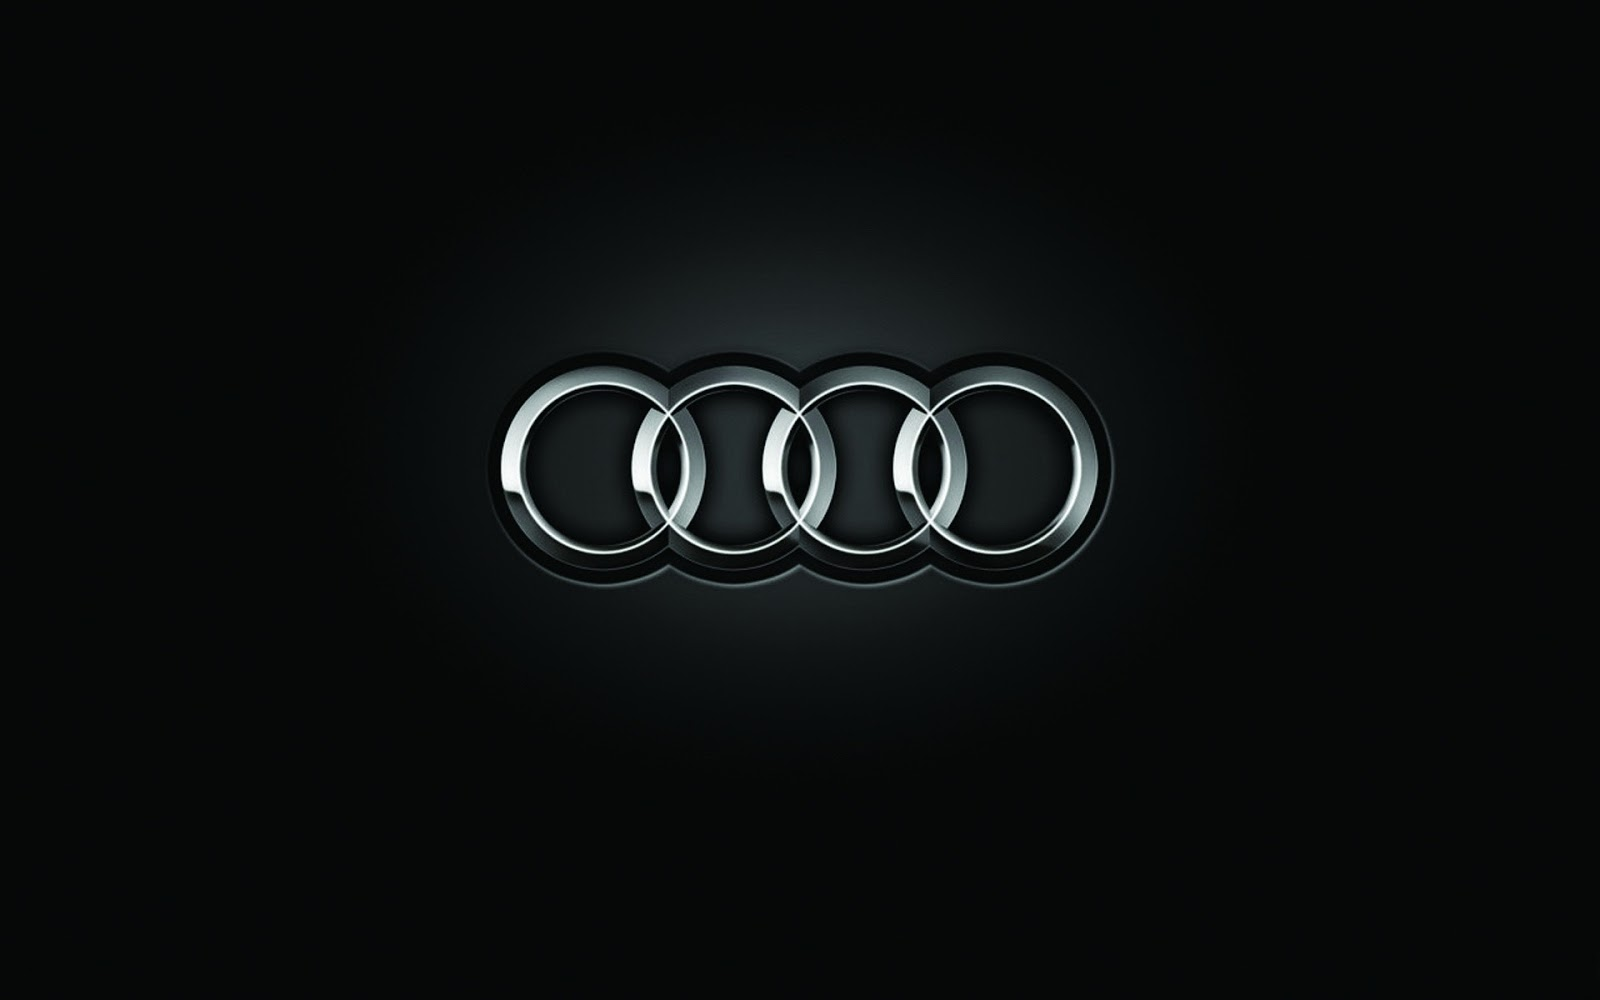 Audi Logo, Audi Car Symbol Meaning and History | Car nd Names.com